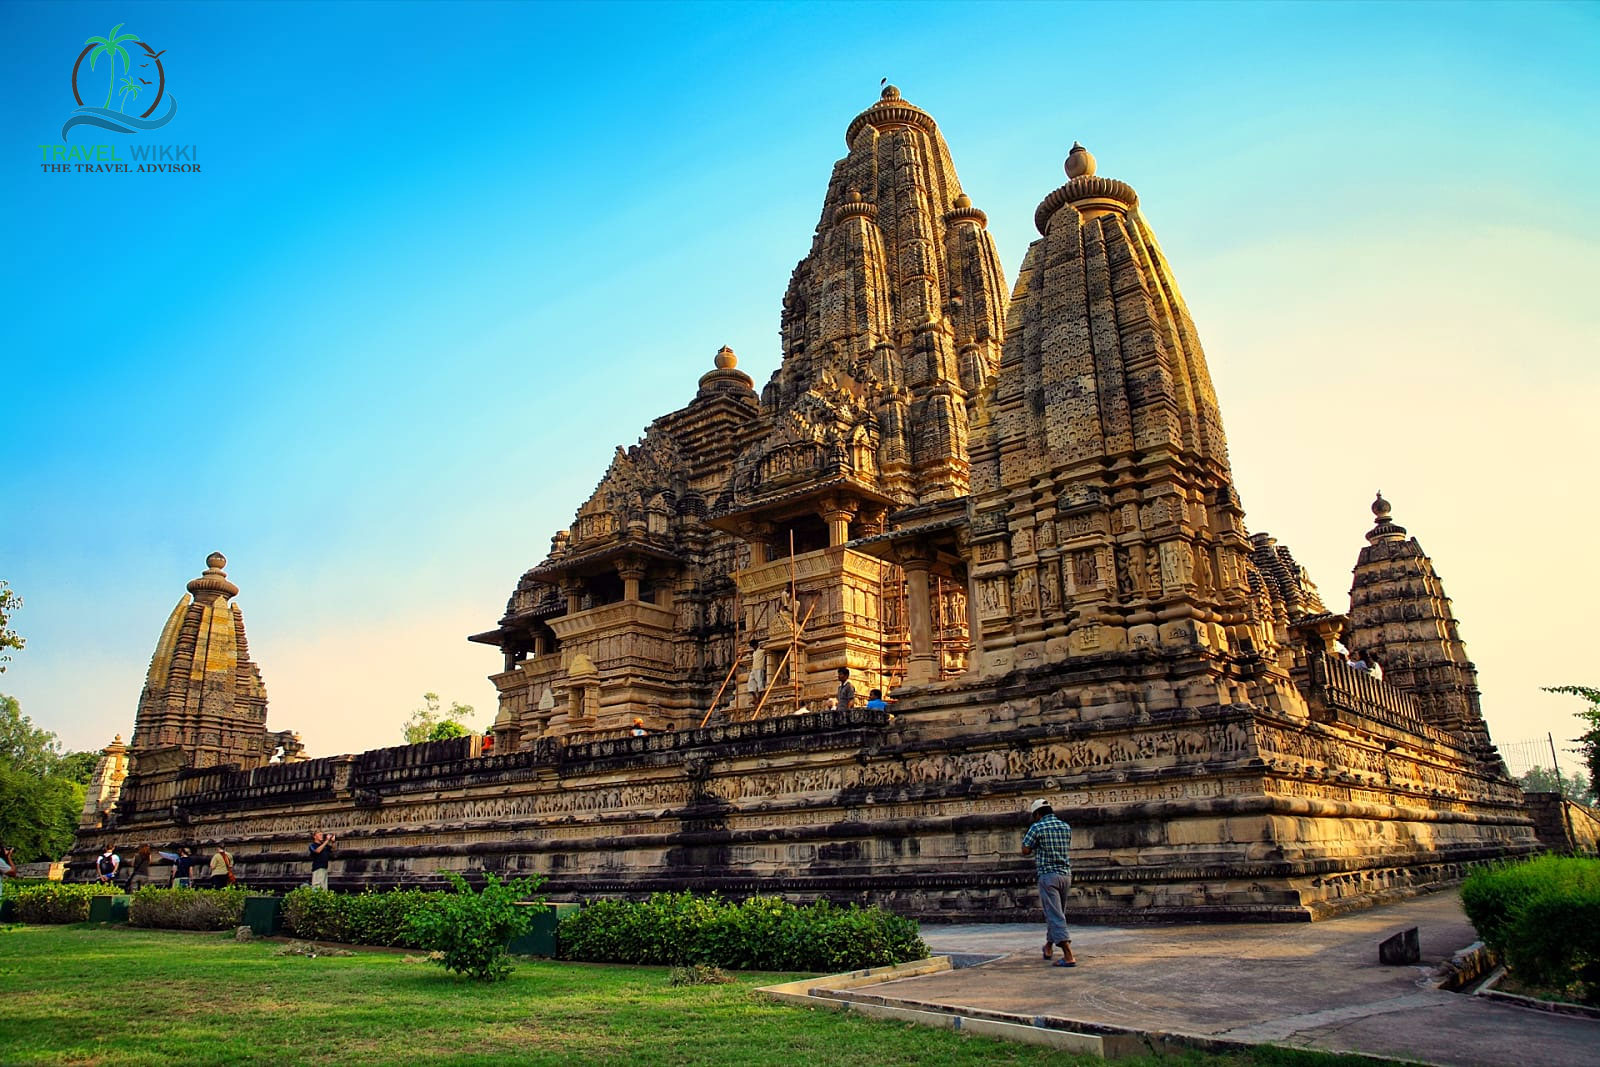 Khajuraho in January